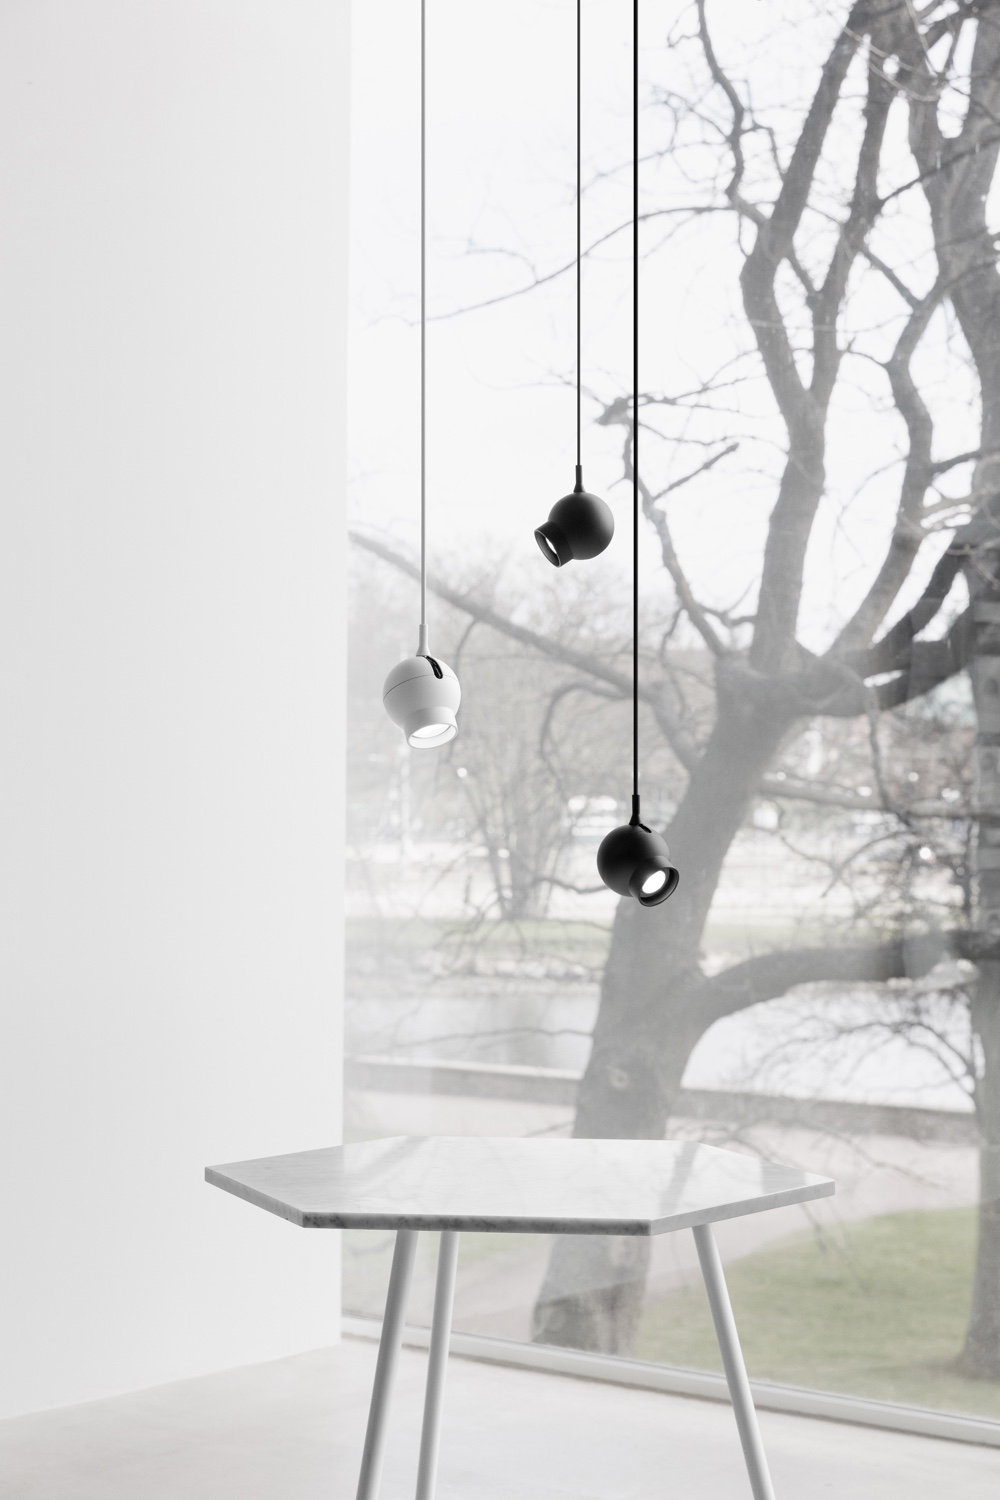 Ogle Mini cluster (black and white) by Form Us With Love for ateljé Lyktan. Image courtesy of ateljé Lyktan.